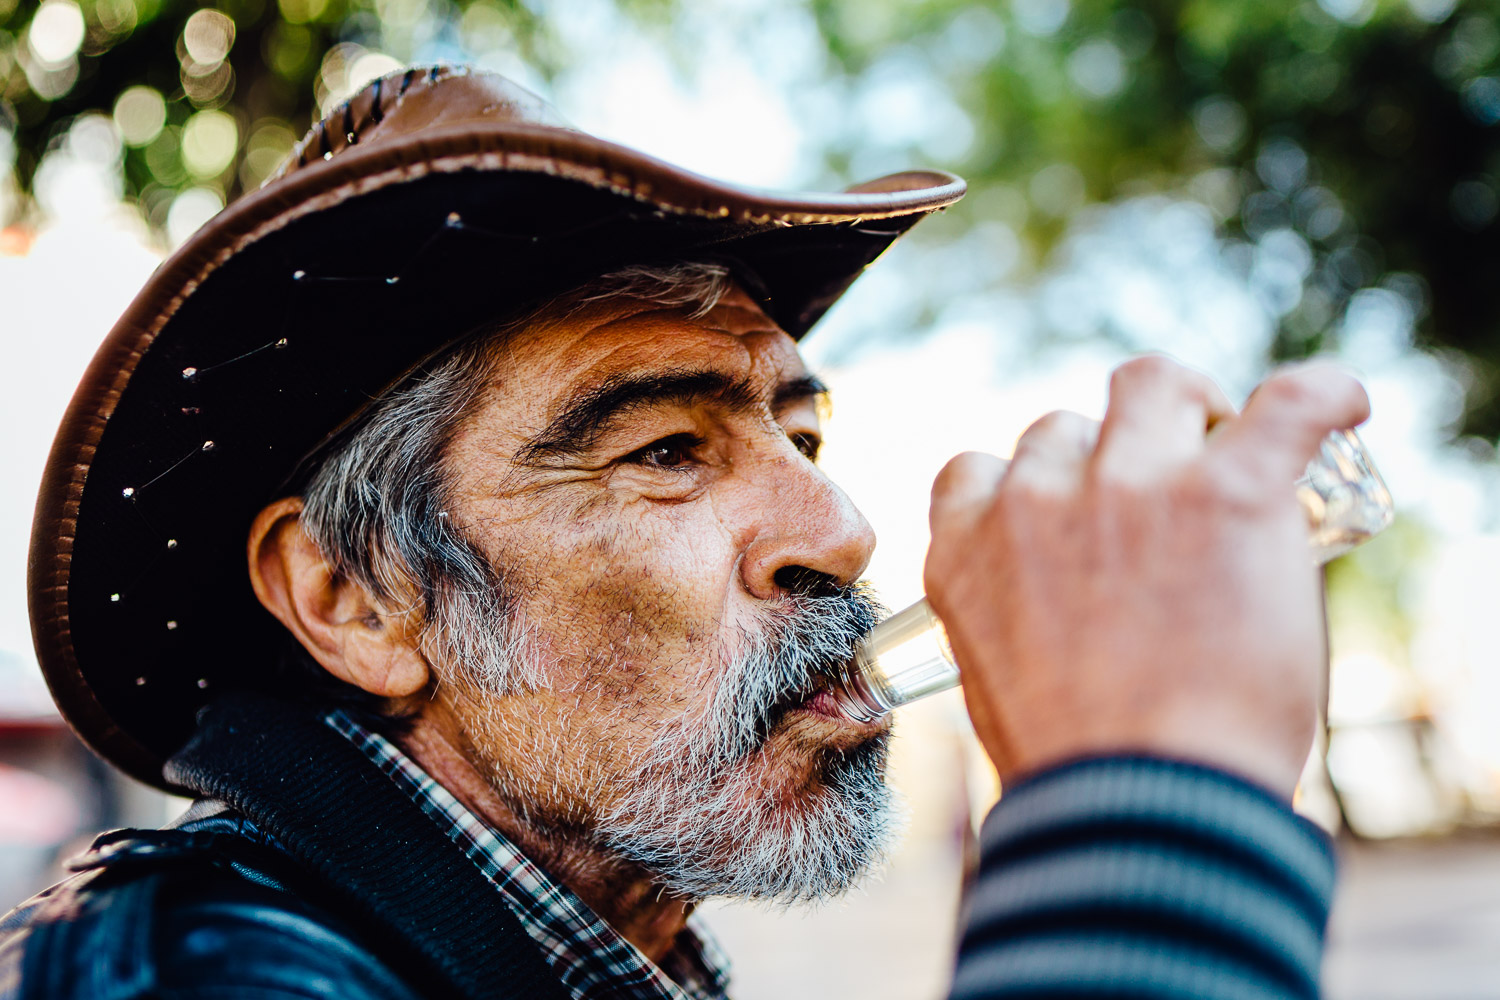 Man-Homeless-Drinking-Tequila-Mexico-Durazo-Photography